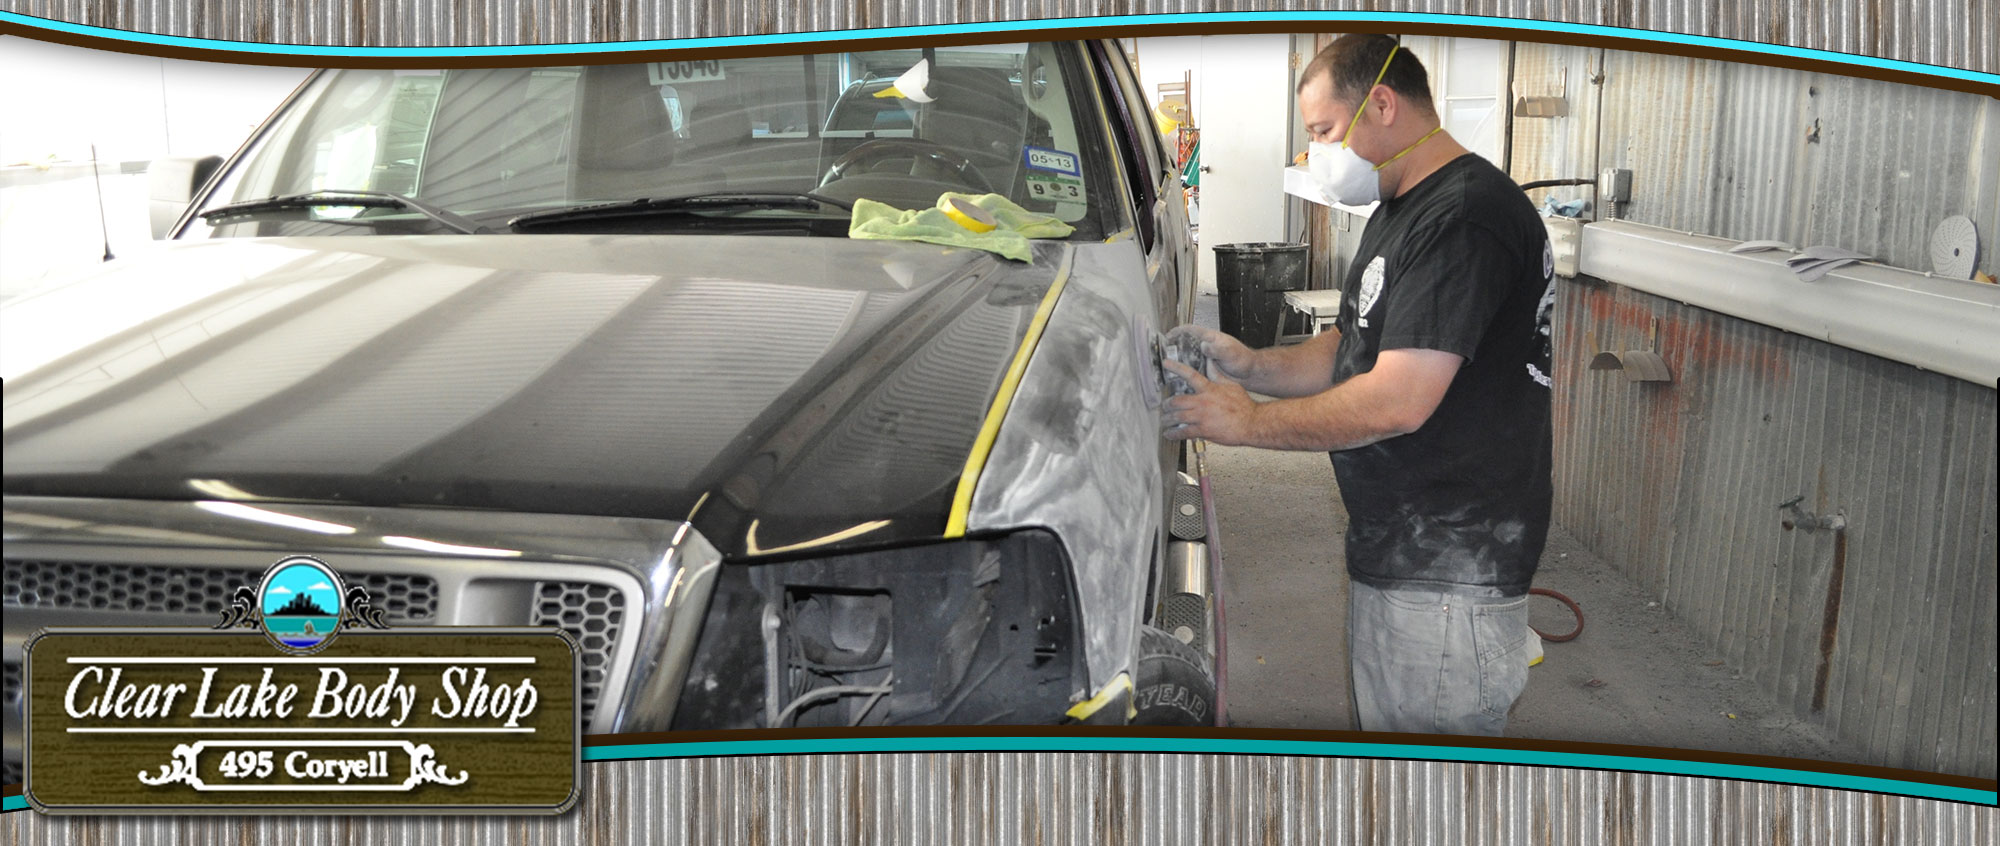 The paint and body shop to service your collision center needs.